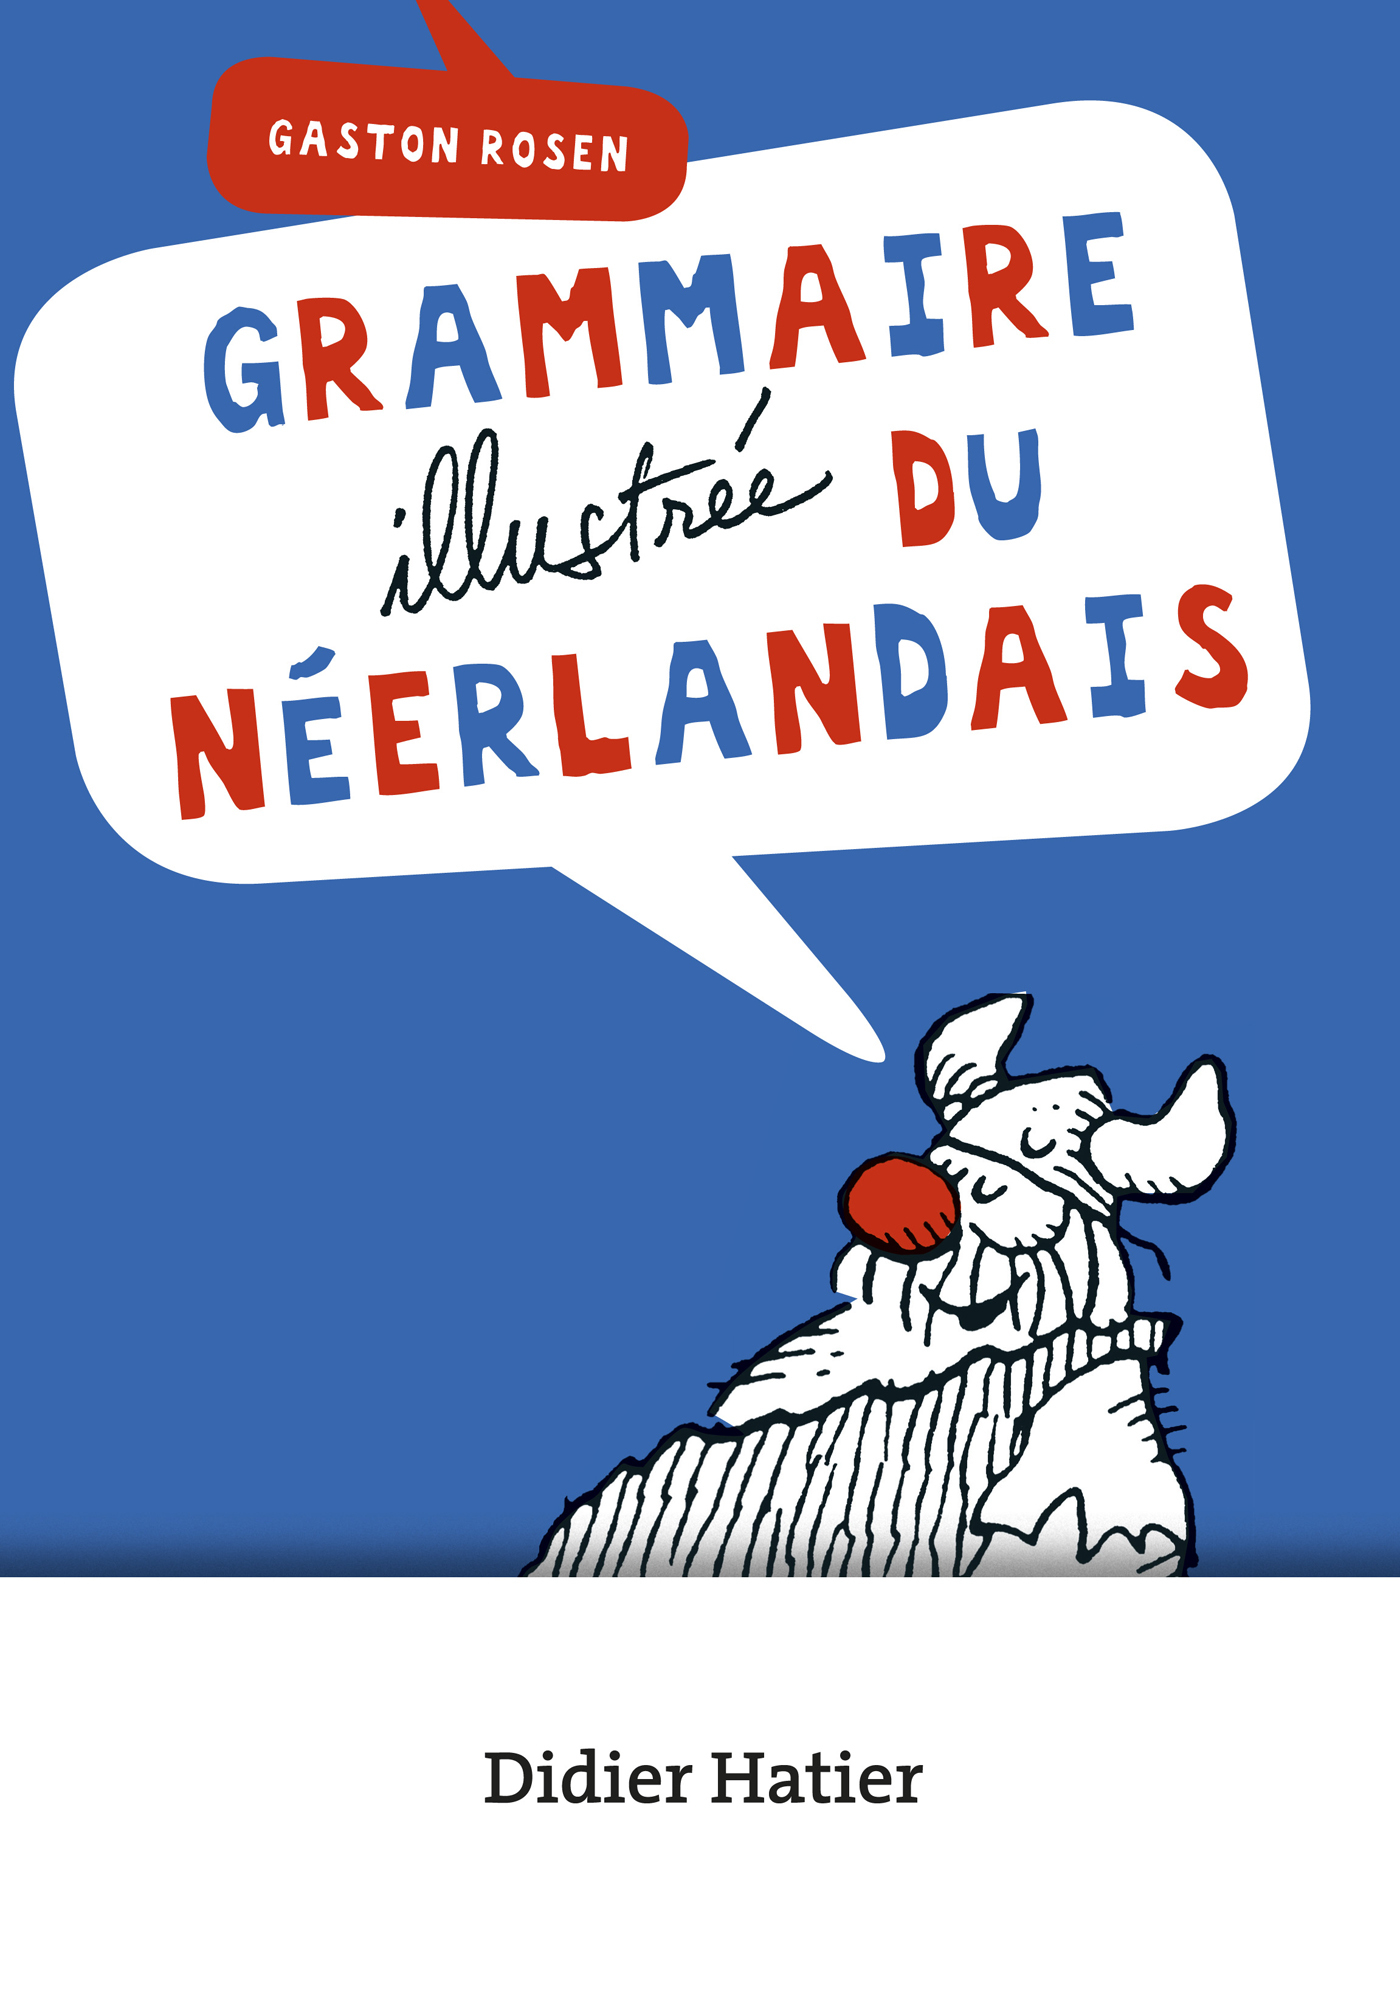 GRAMMAIRE ILLUSTREE DU NEERLANDAIS